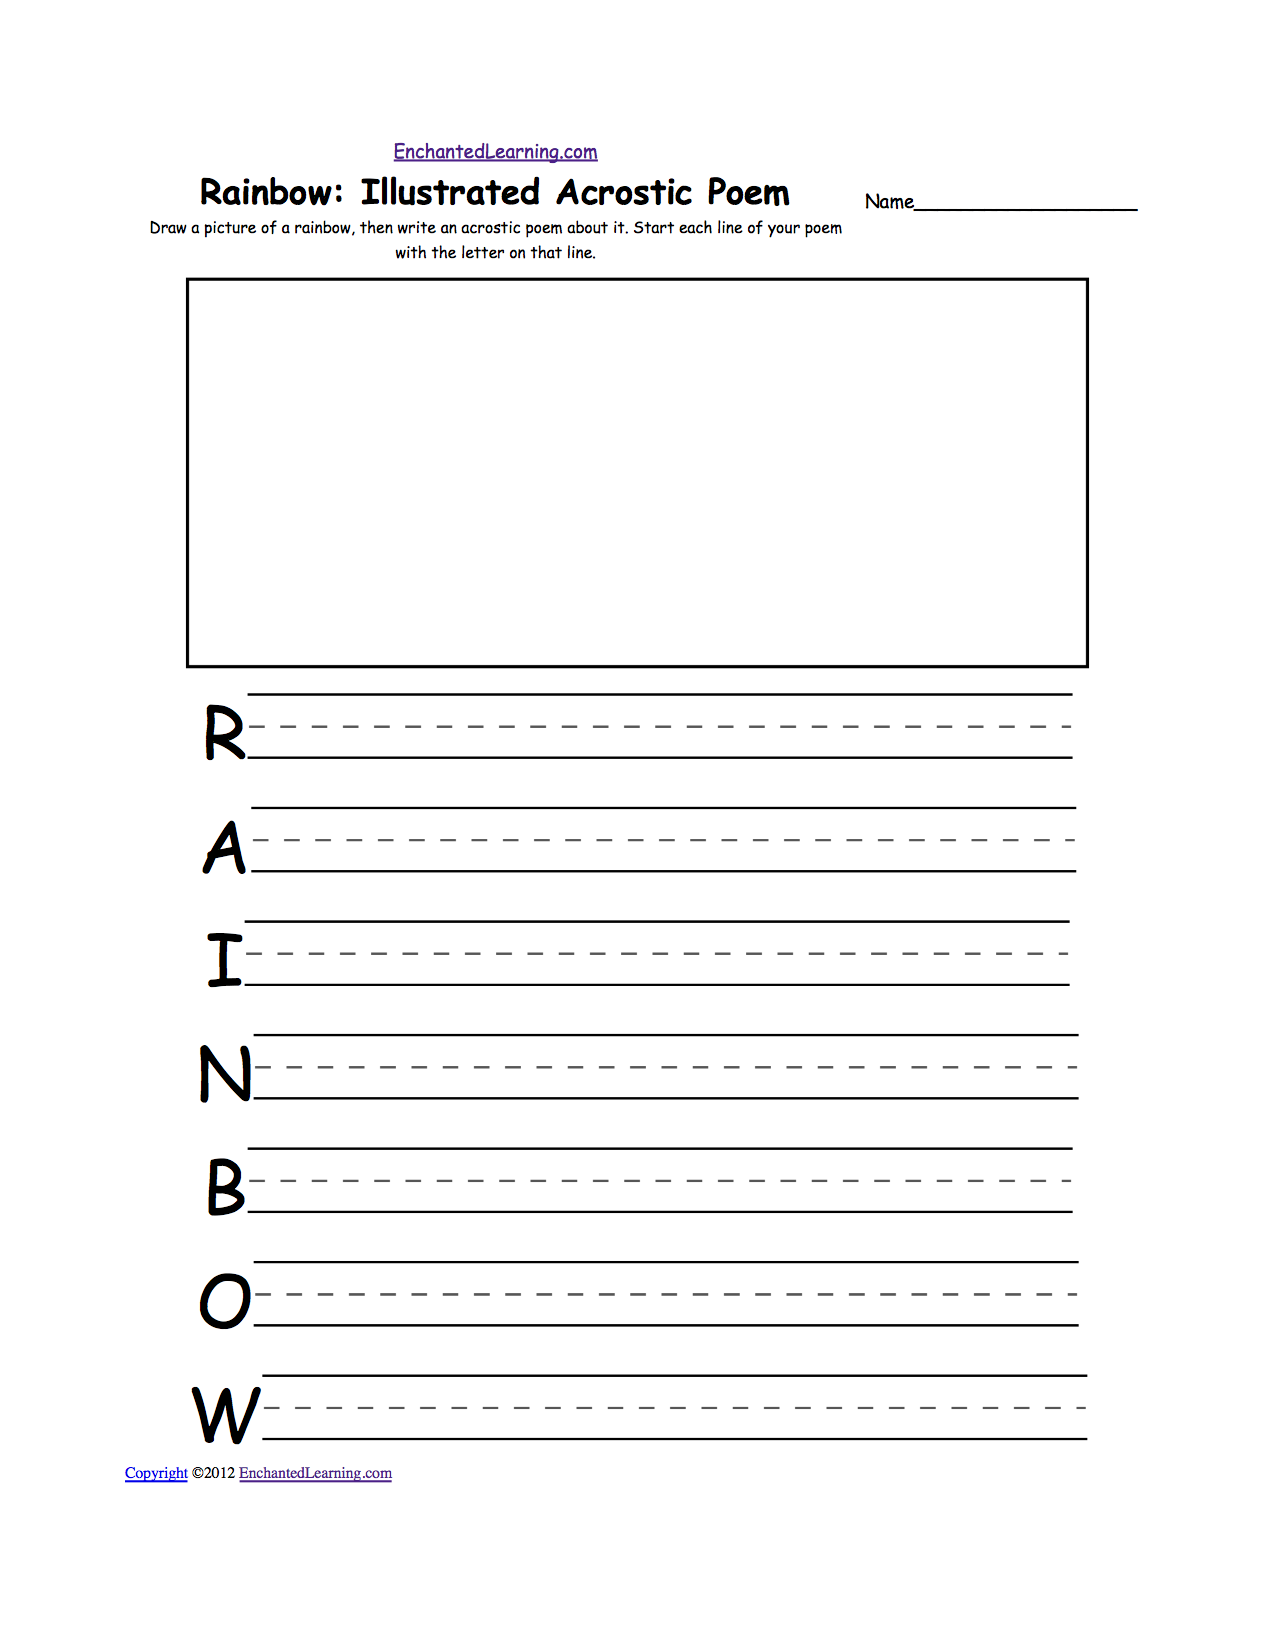 Rainbow: Illustrated Acrostic Poem Draw a rainbow, then write an acrostic  poem about it. Start each line of your poem with the letter on that line.